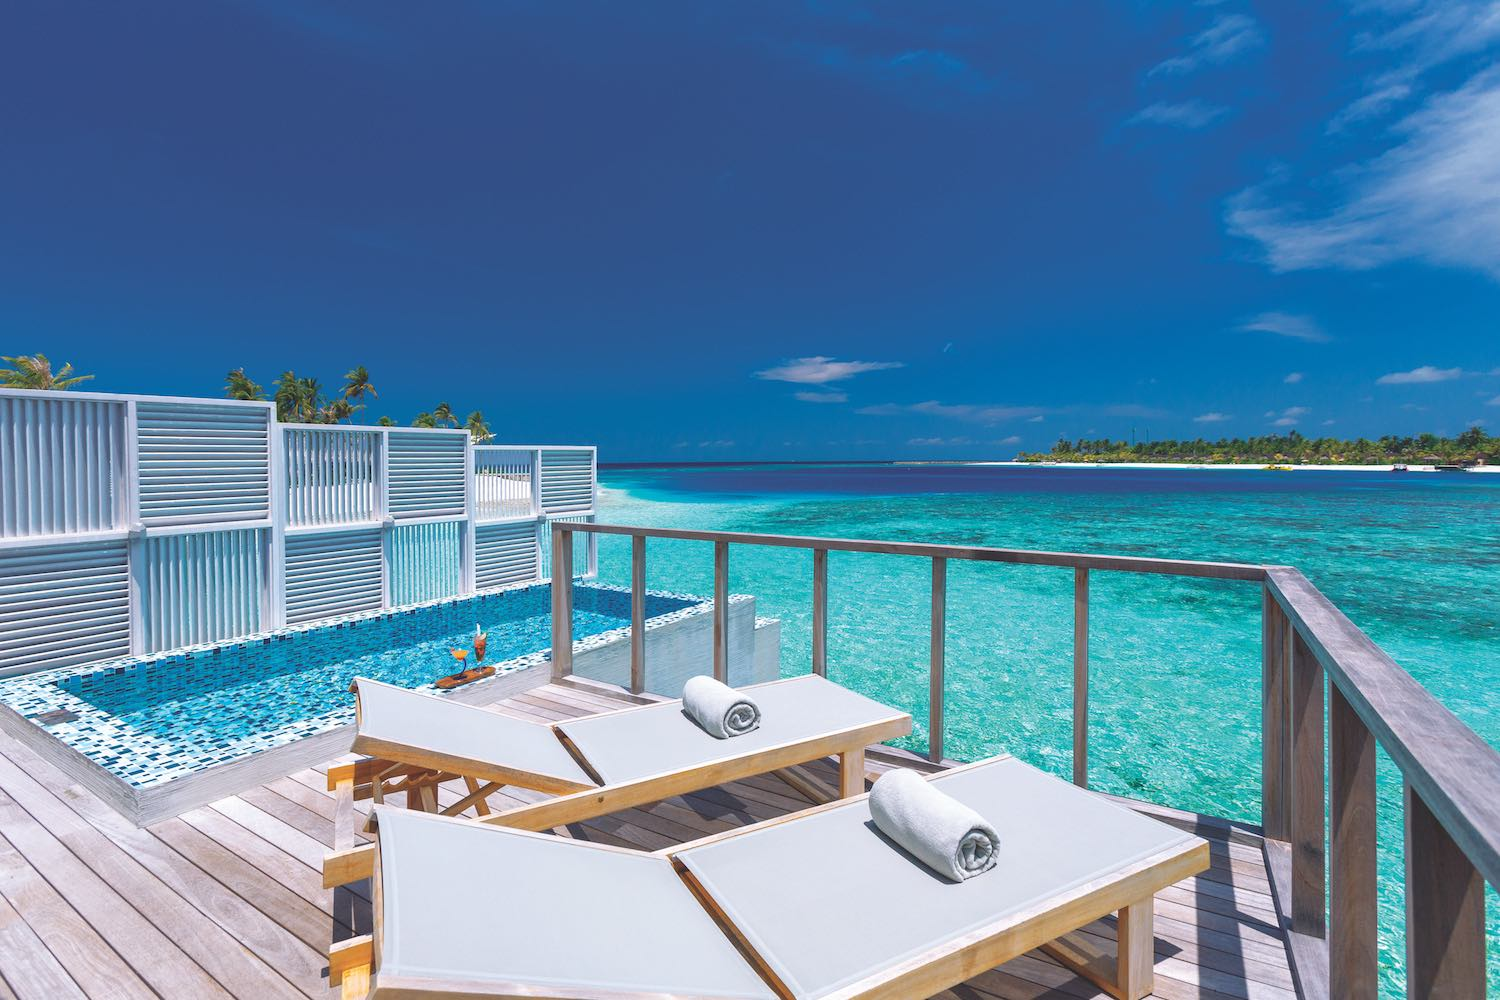 maldives-oblu-select-at-sangeli-deluxe-water-villa-with-pool-2-holiday-honeymoon-vacation-invite-to-paradise.jpg